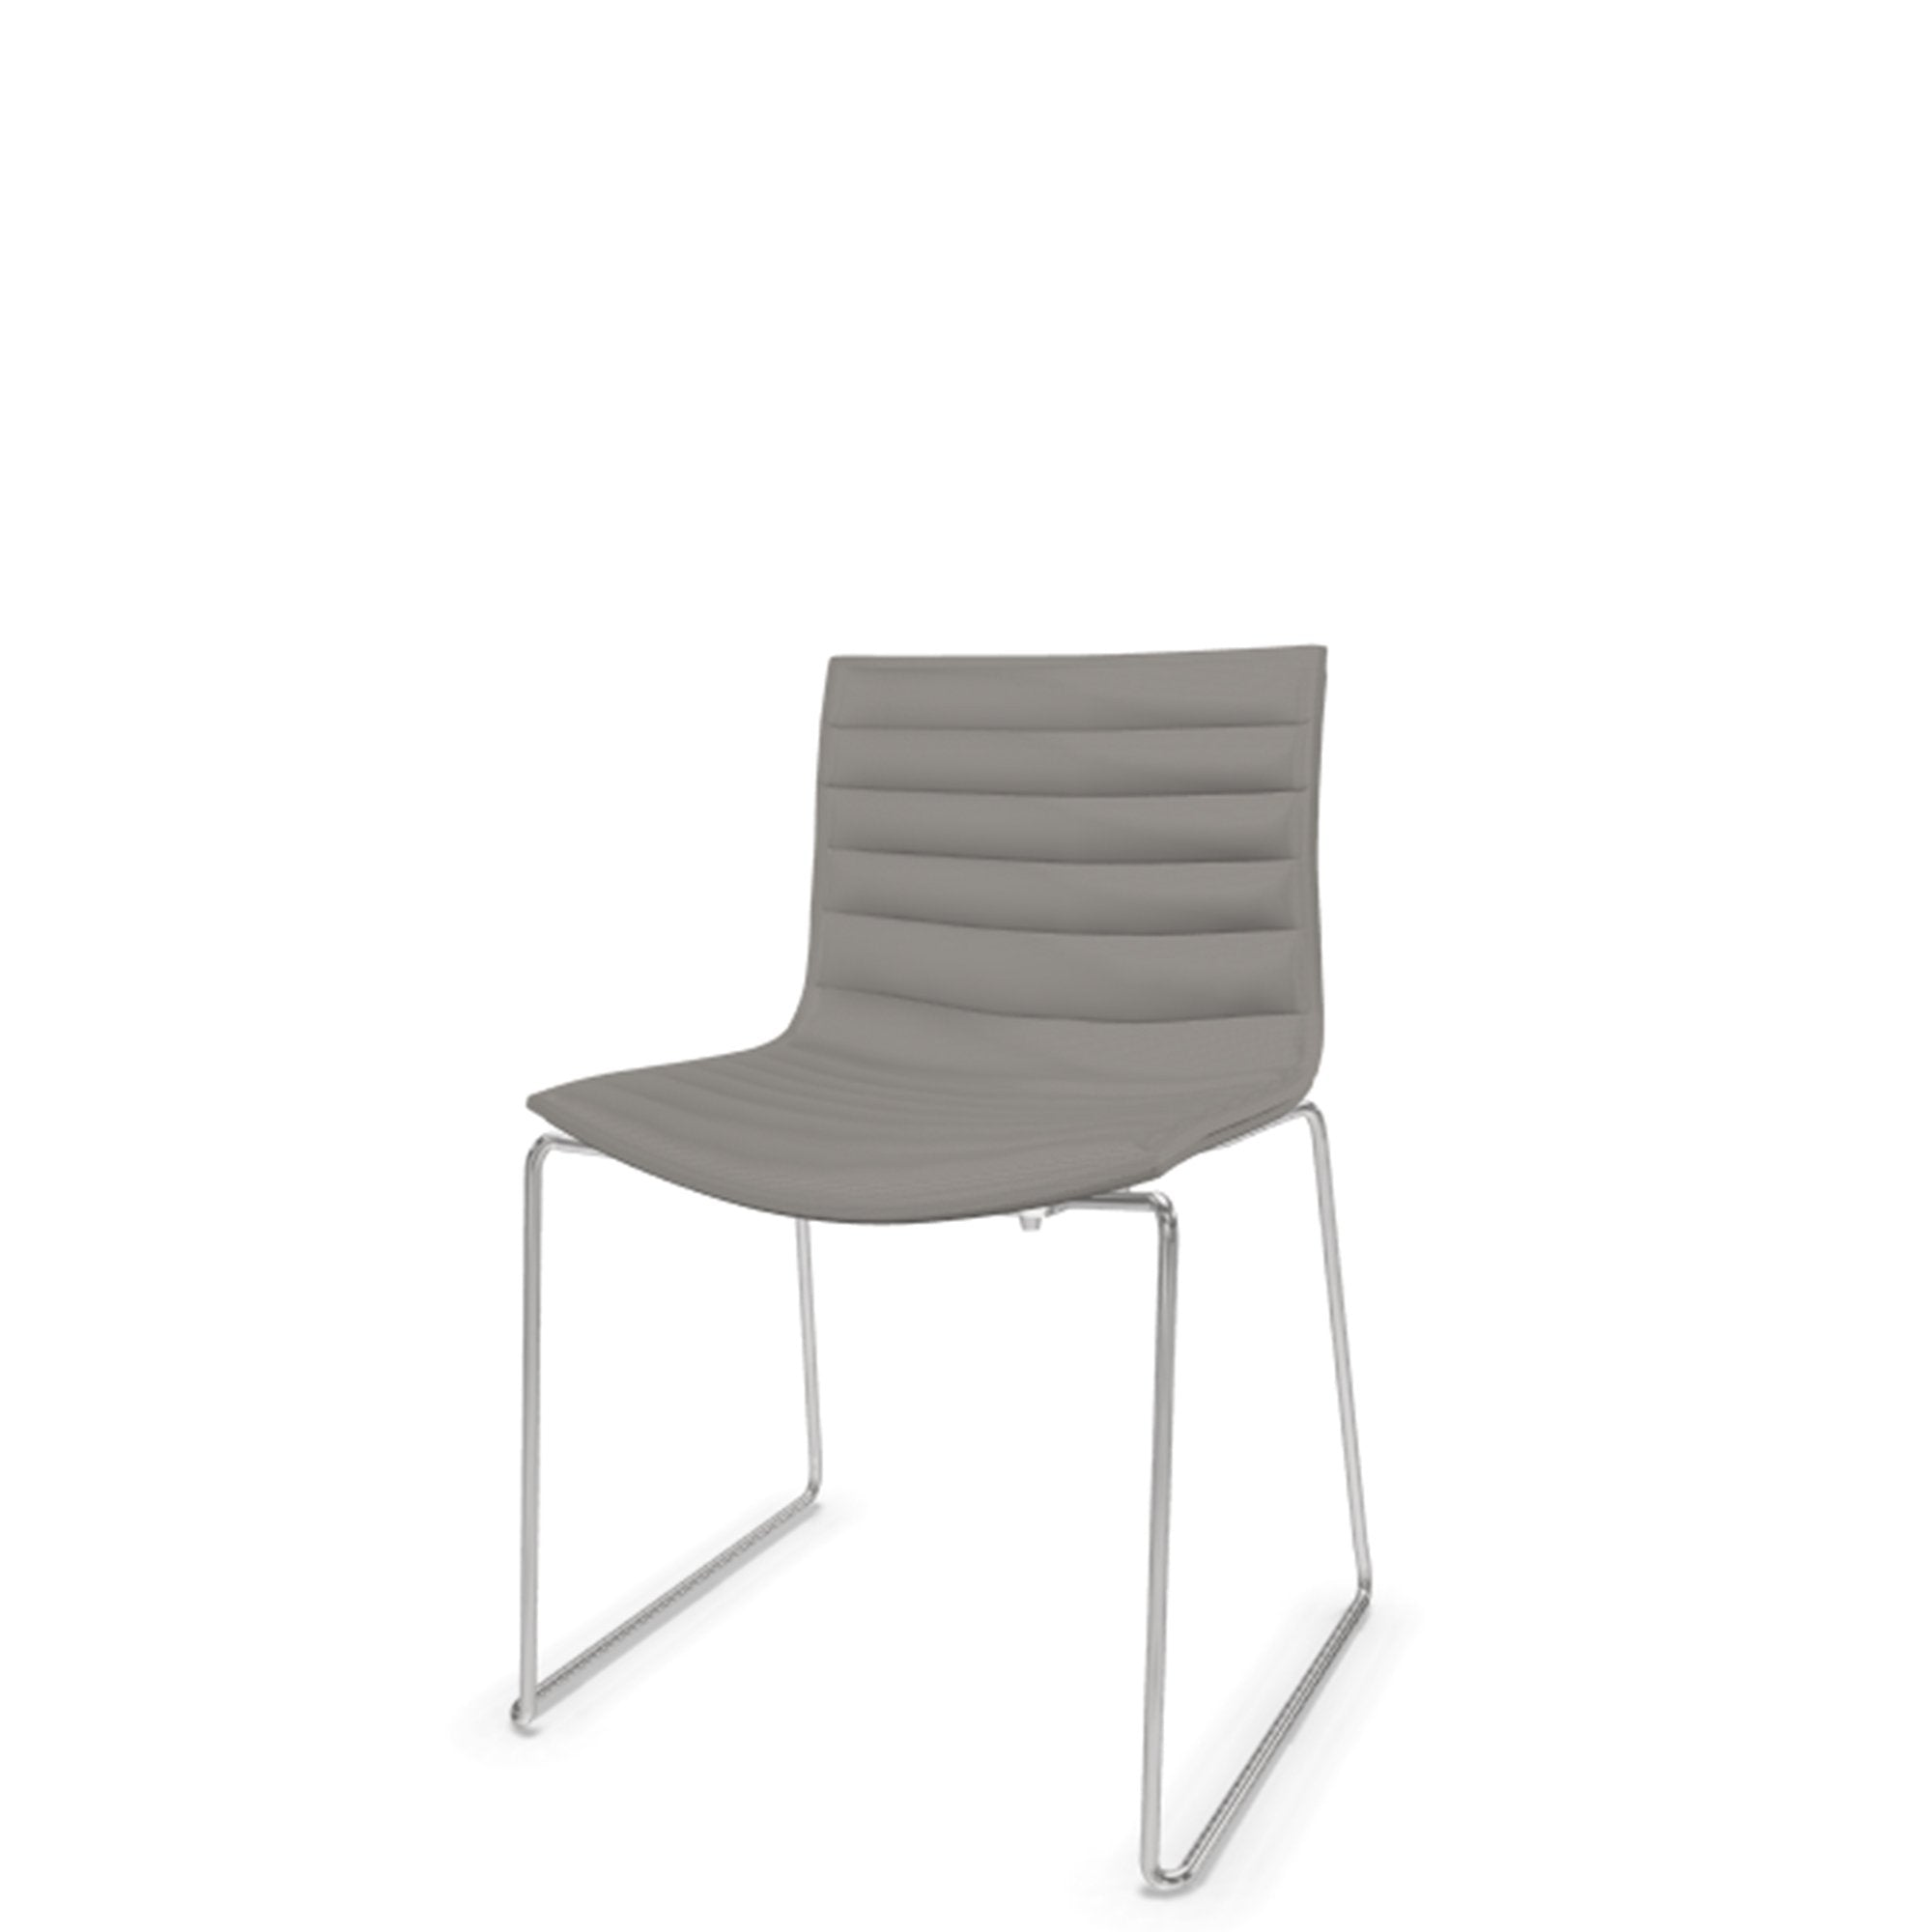 Arper Catifa 46 Stackable Chair Cloud 0242 with Chrome Base